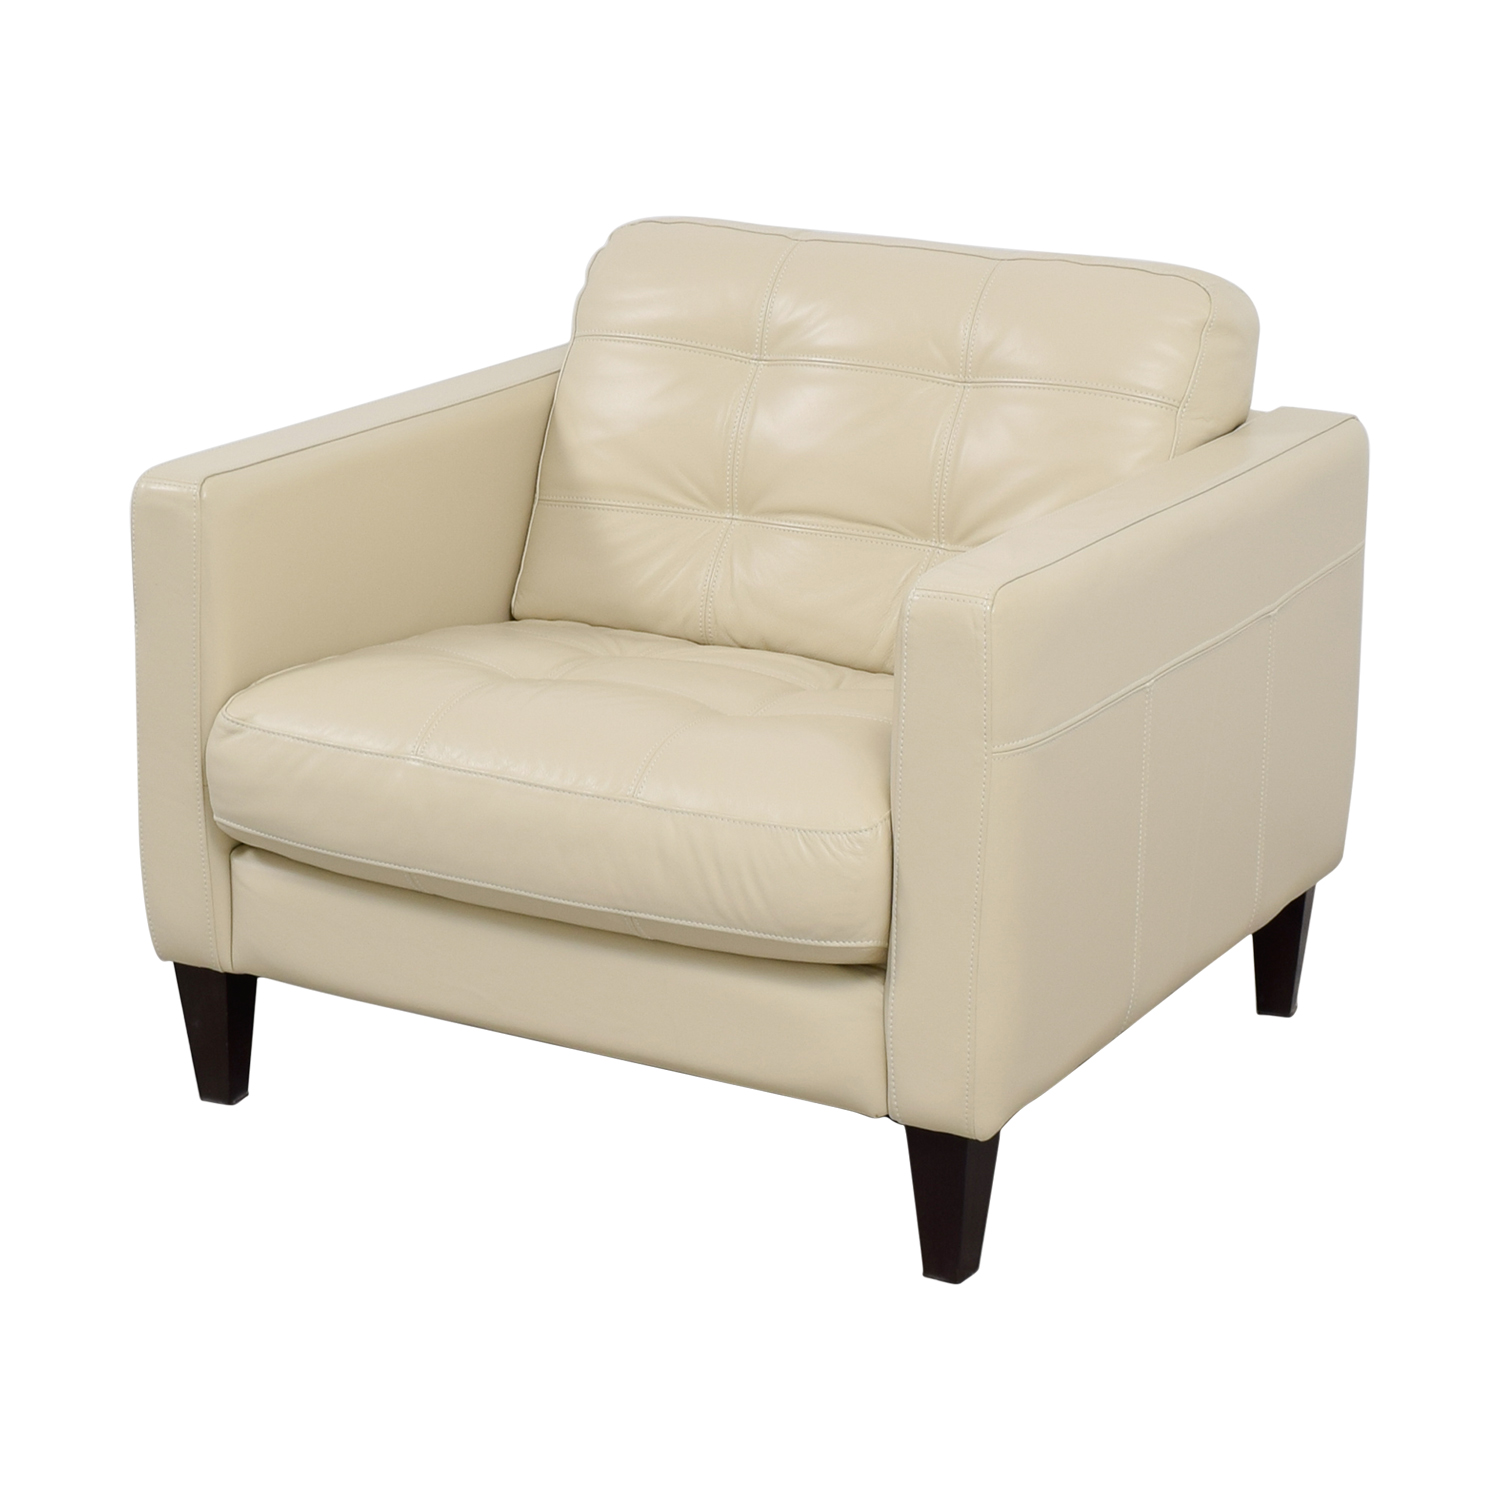 Macys Leather Chair 48 Off Macy S Macy S Milano White Leather Tufted Accent Chair Chairs